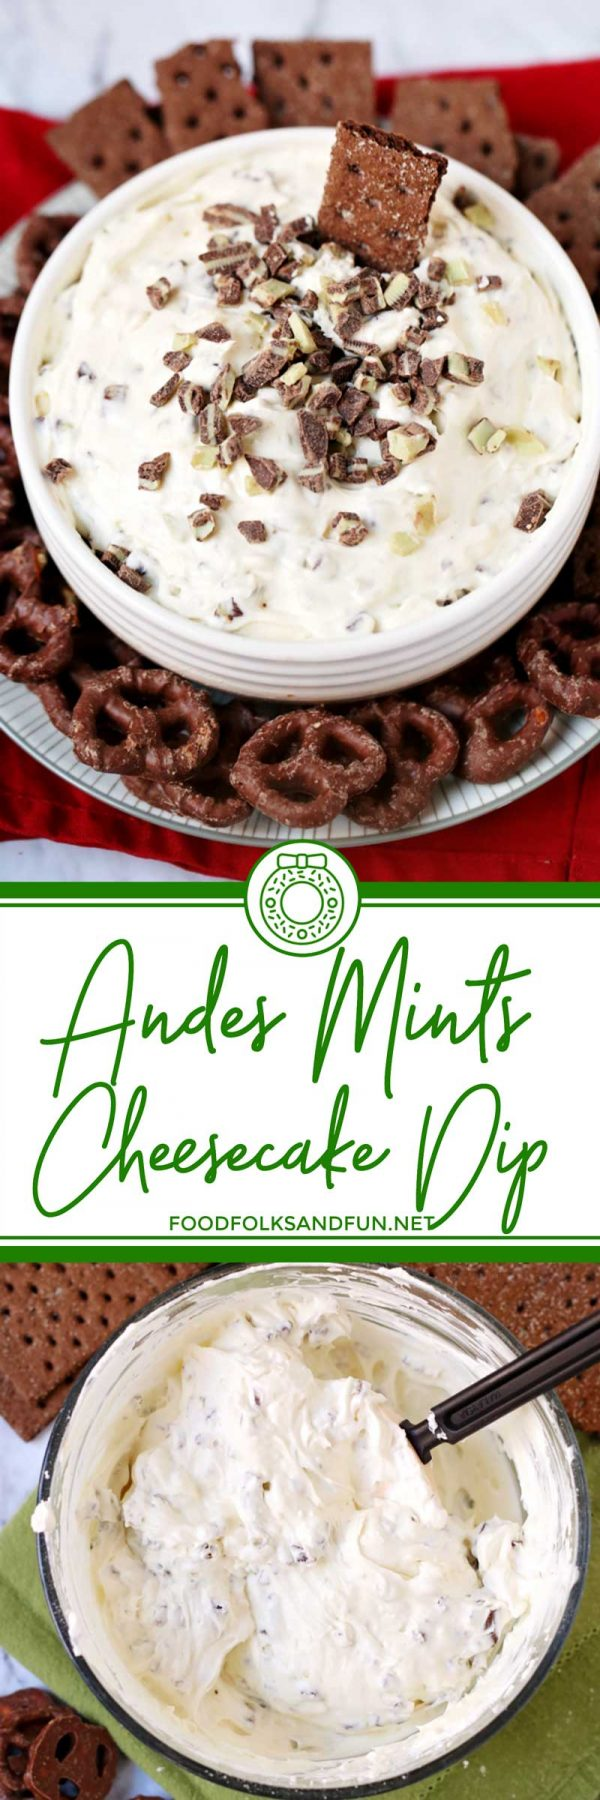 This Andes Mint Cheesecake Dip is a quick & easy holiday dessert dip that comes together in 10 minutes! It's creamy, delicious and has a hint of Créme de Menthe flavor. via @foodfolksandfun